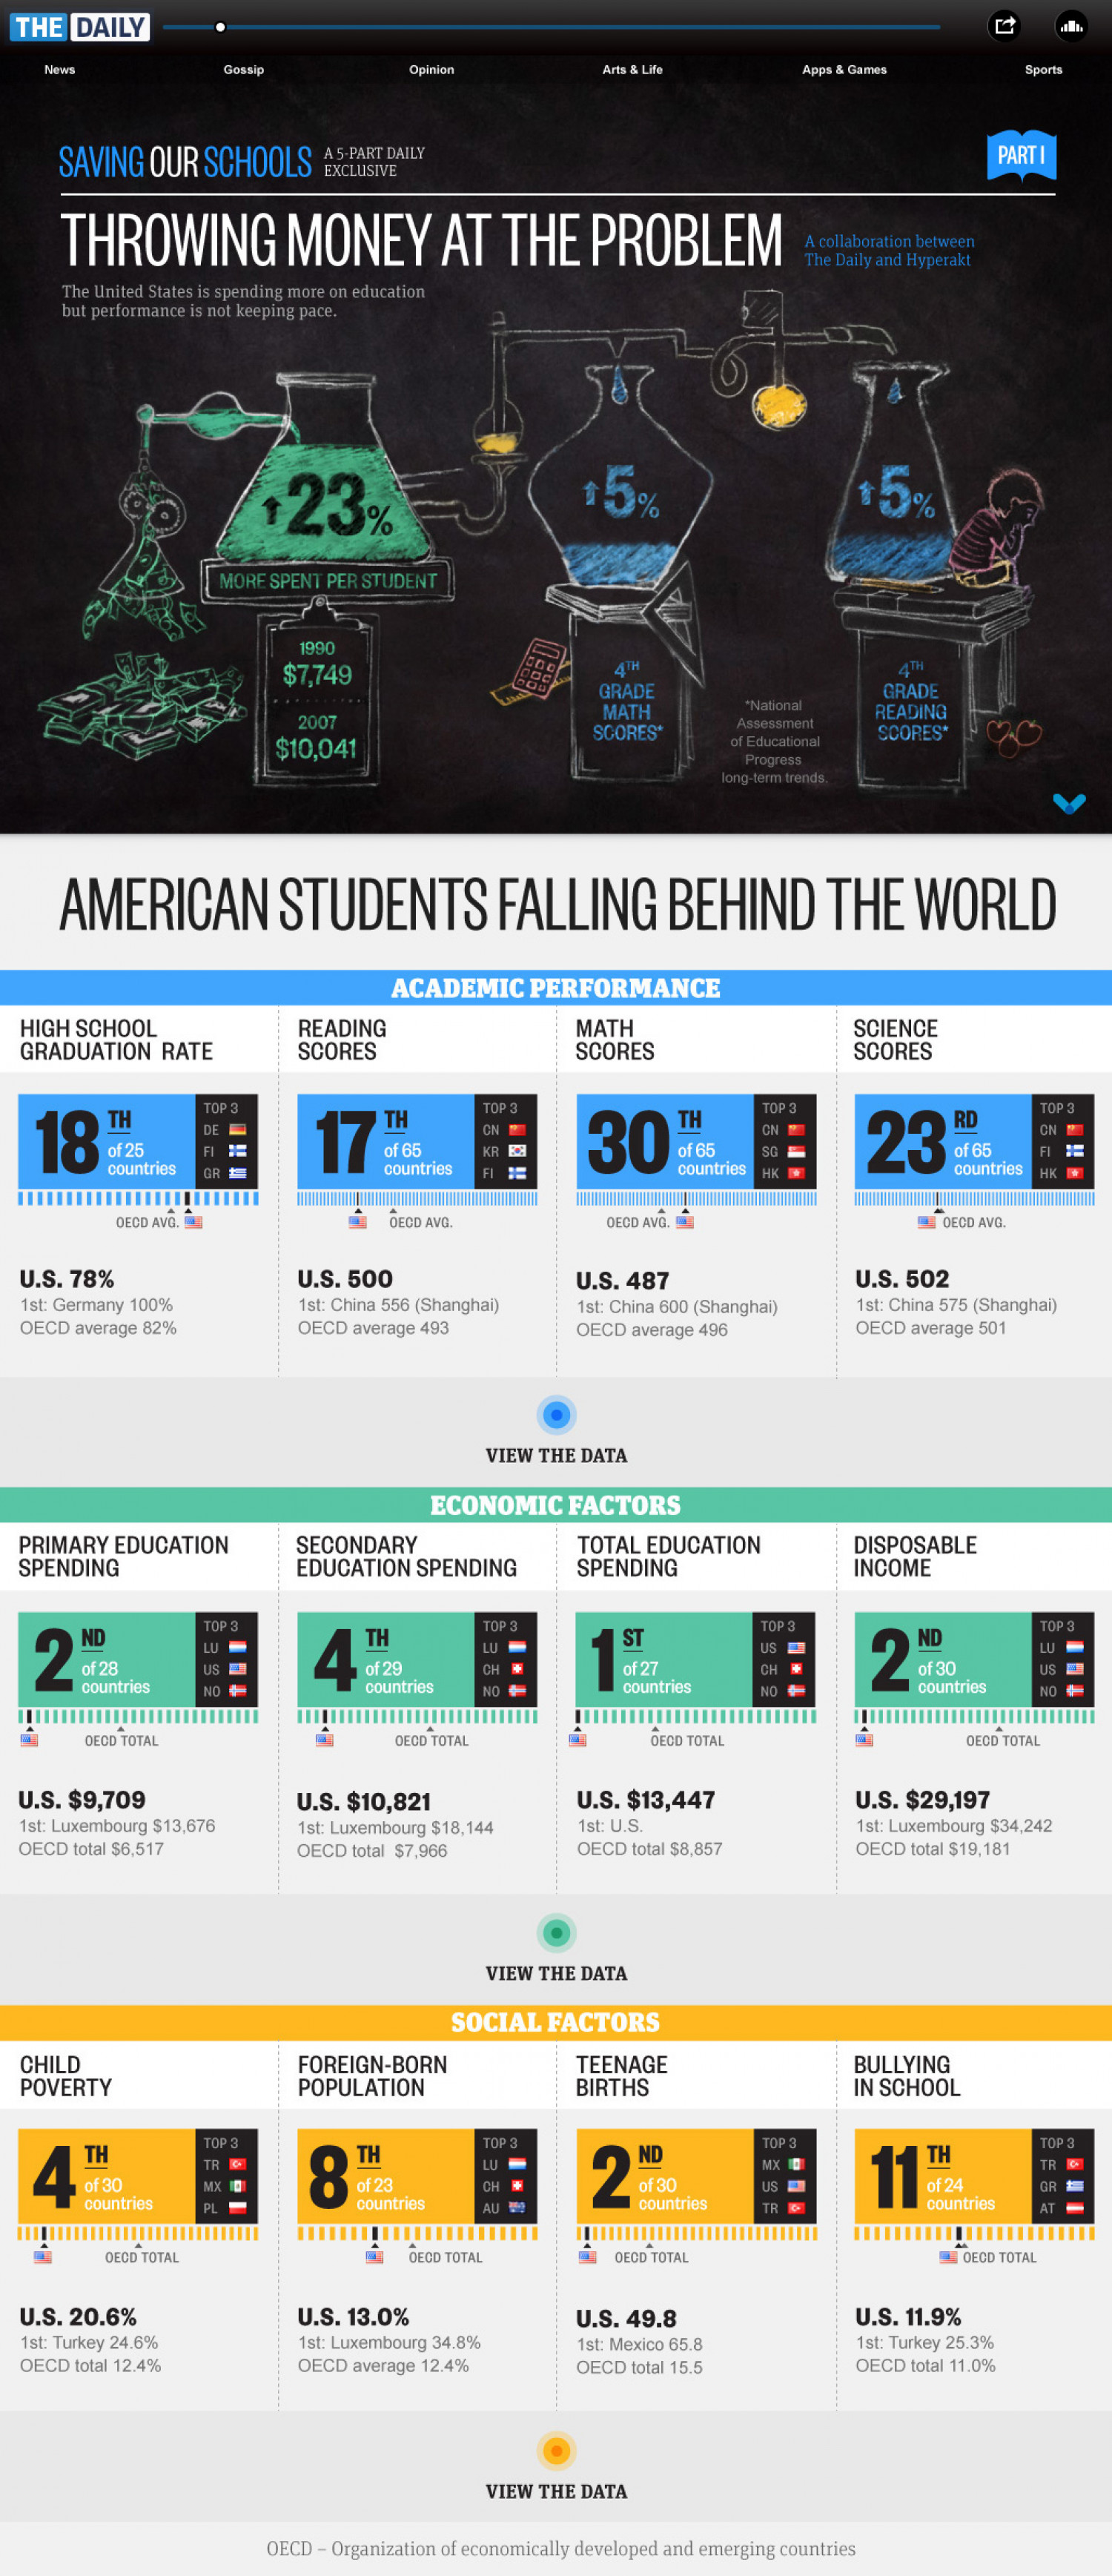 Throwing Money at The Problem Infographic